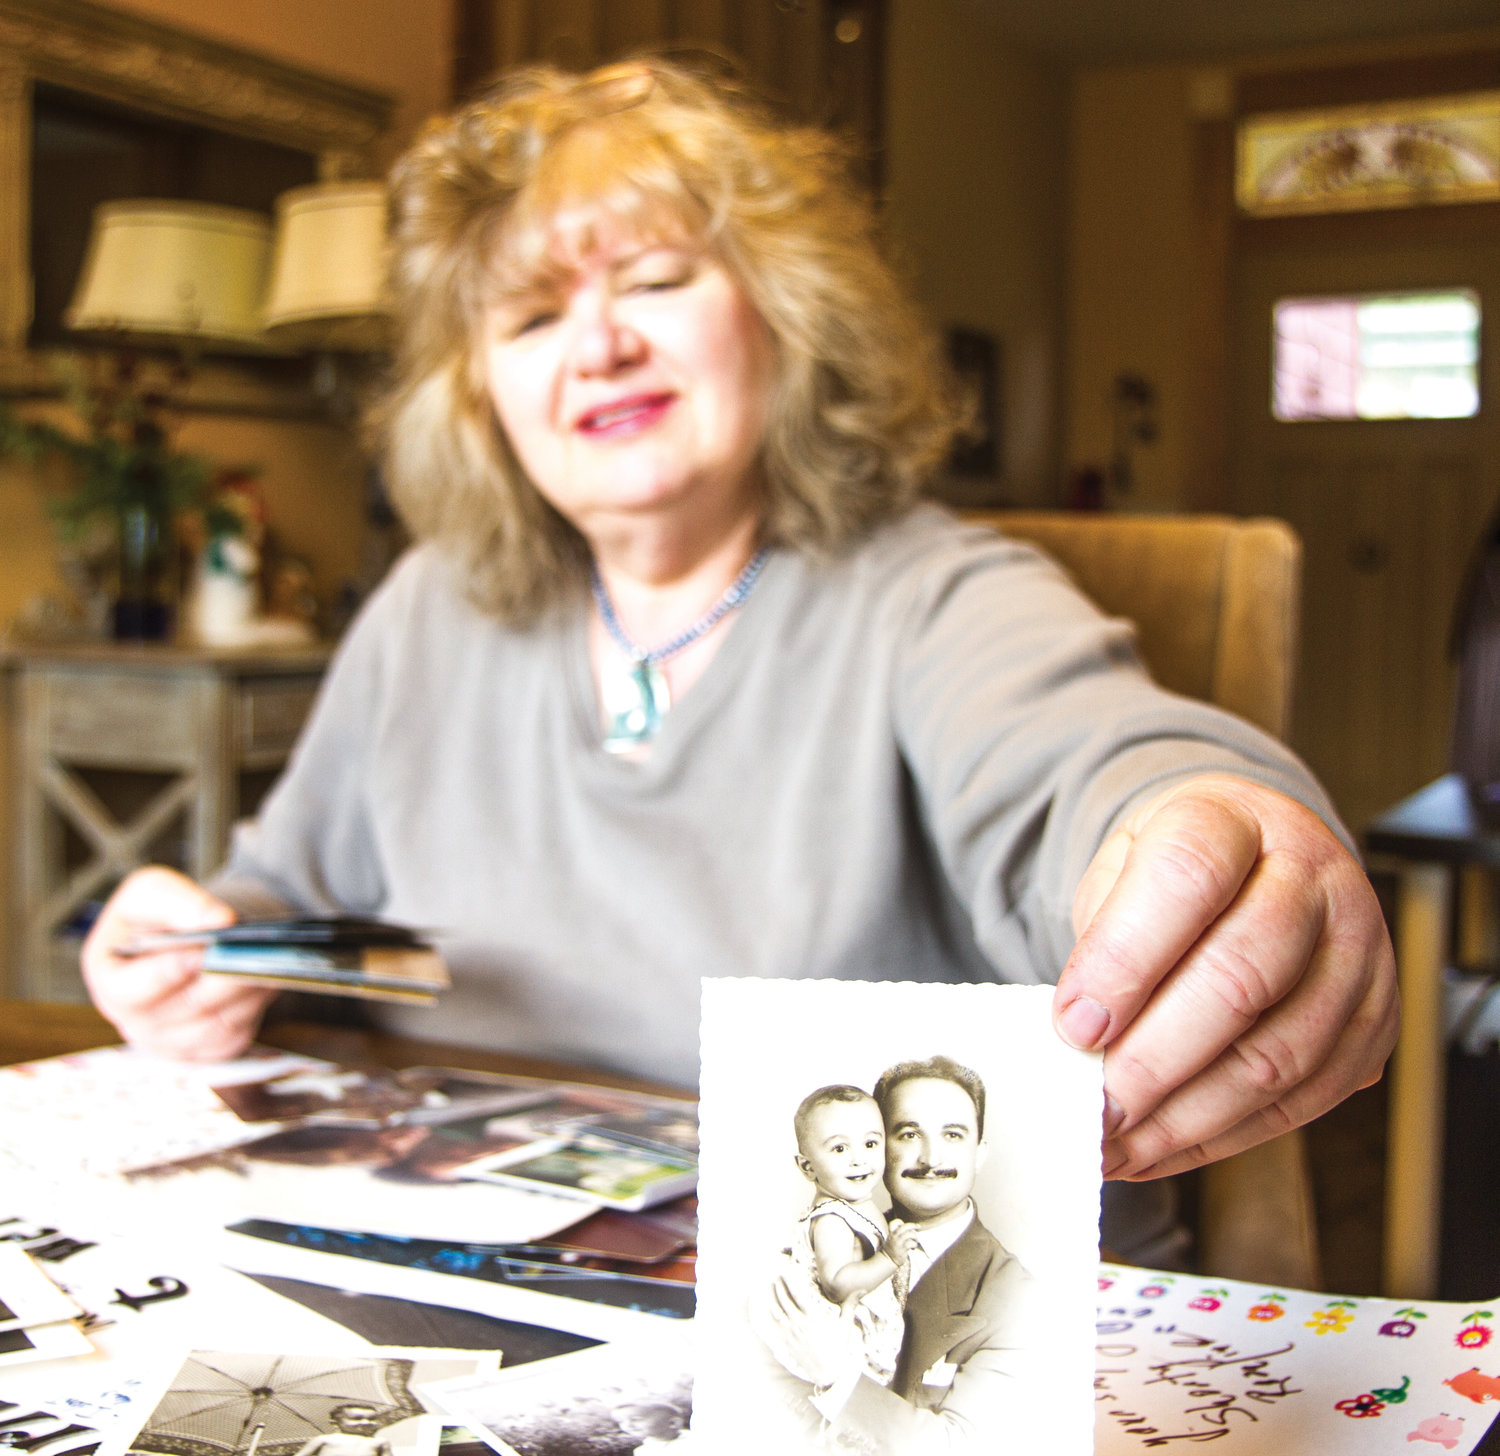 Marie Youssefirad reminisces over photos of her late husband, Fariborz Youssefirad, who died of complications from type 2 diabetes in 2014. The two met in college in California in the 1970s and were married in 1978. They were inseparable, she said, adding they never had kids but had plenty of fun during their time together.